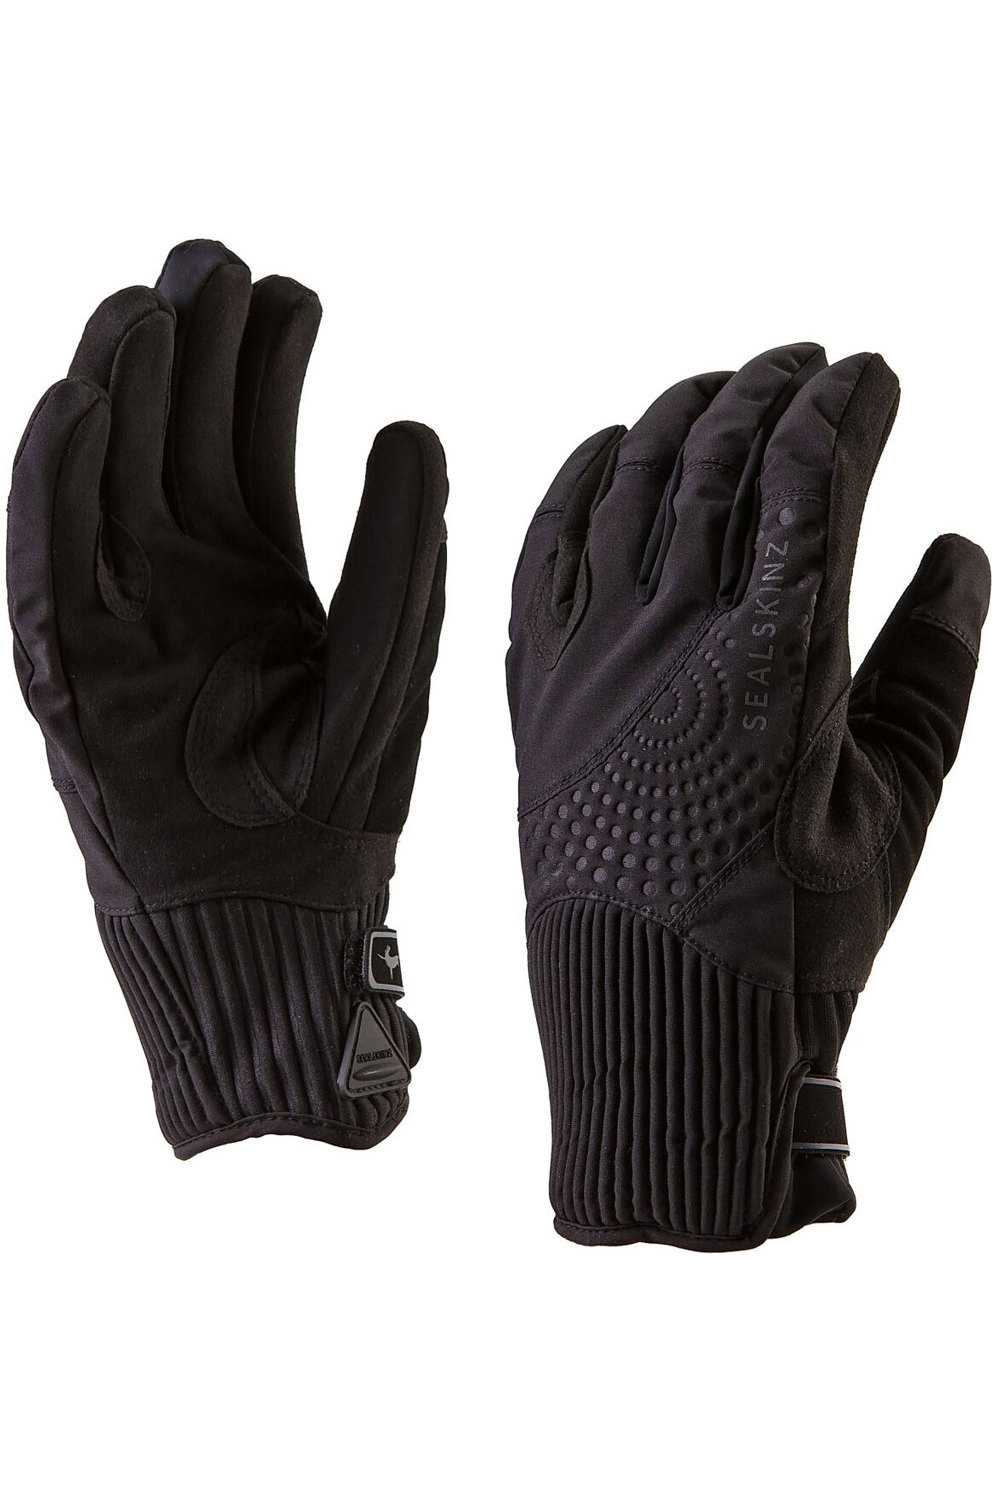 Sealskinz Womens Elgin Riding Gloves Black The Drillshed